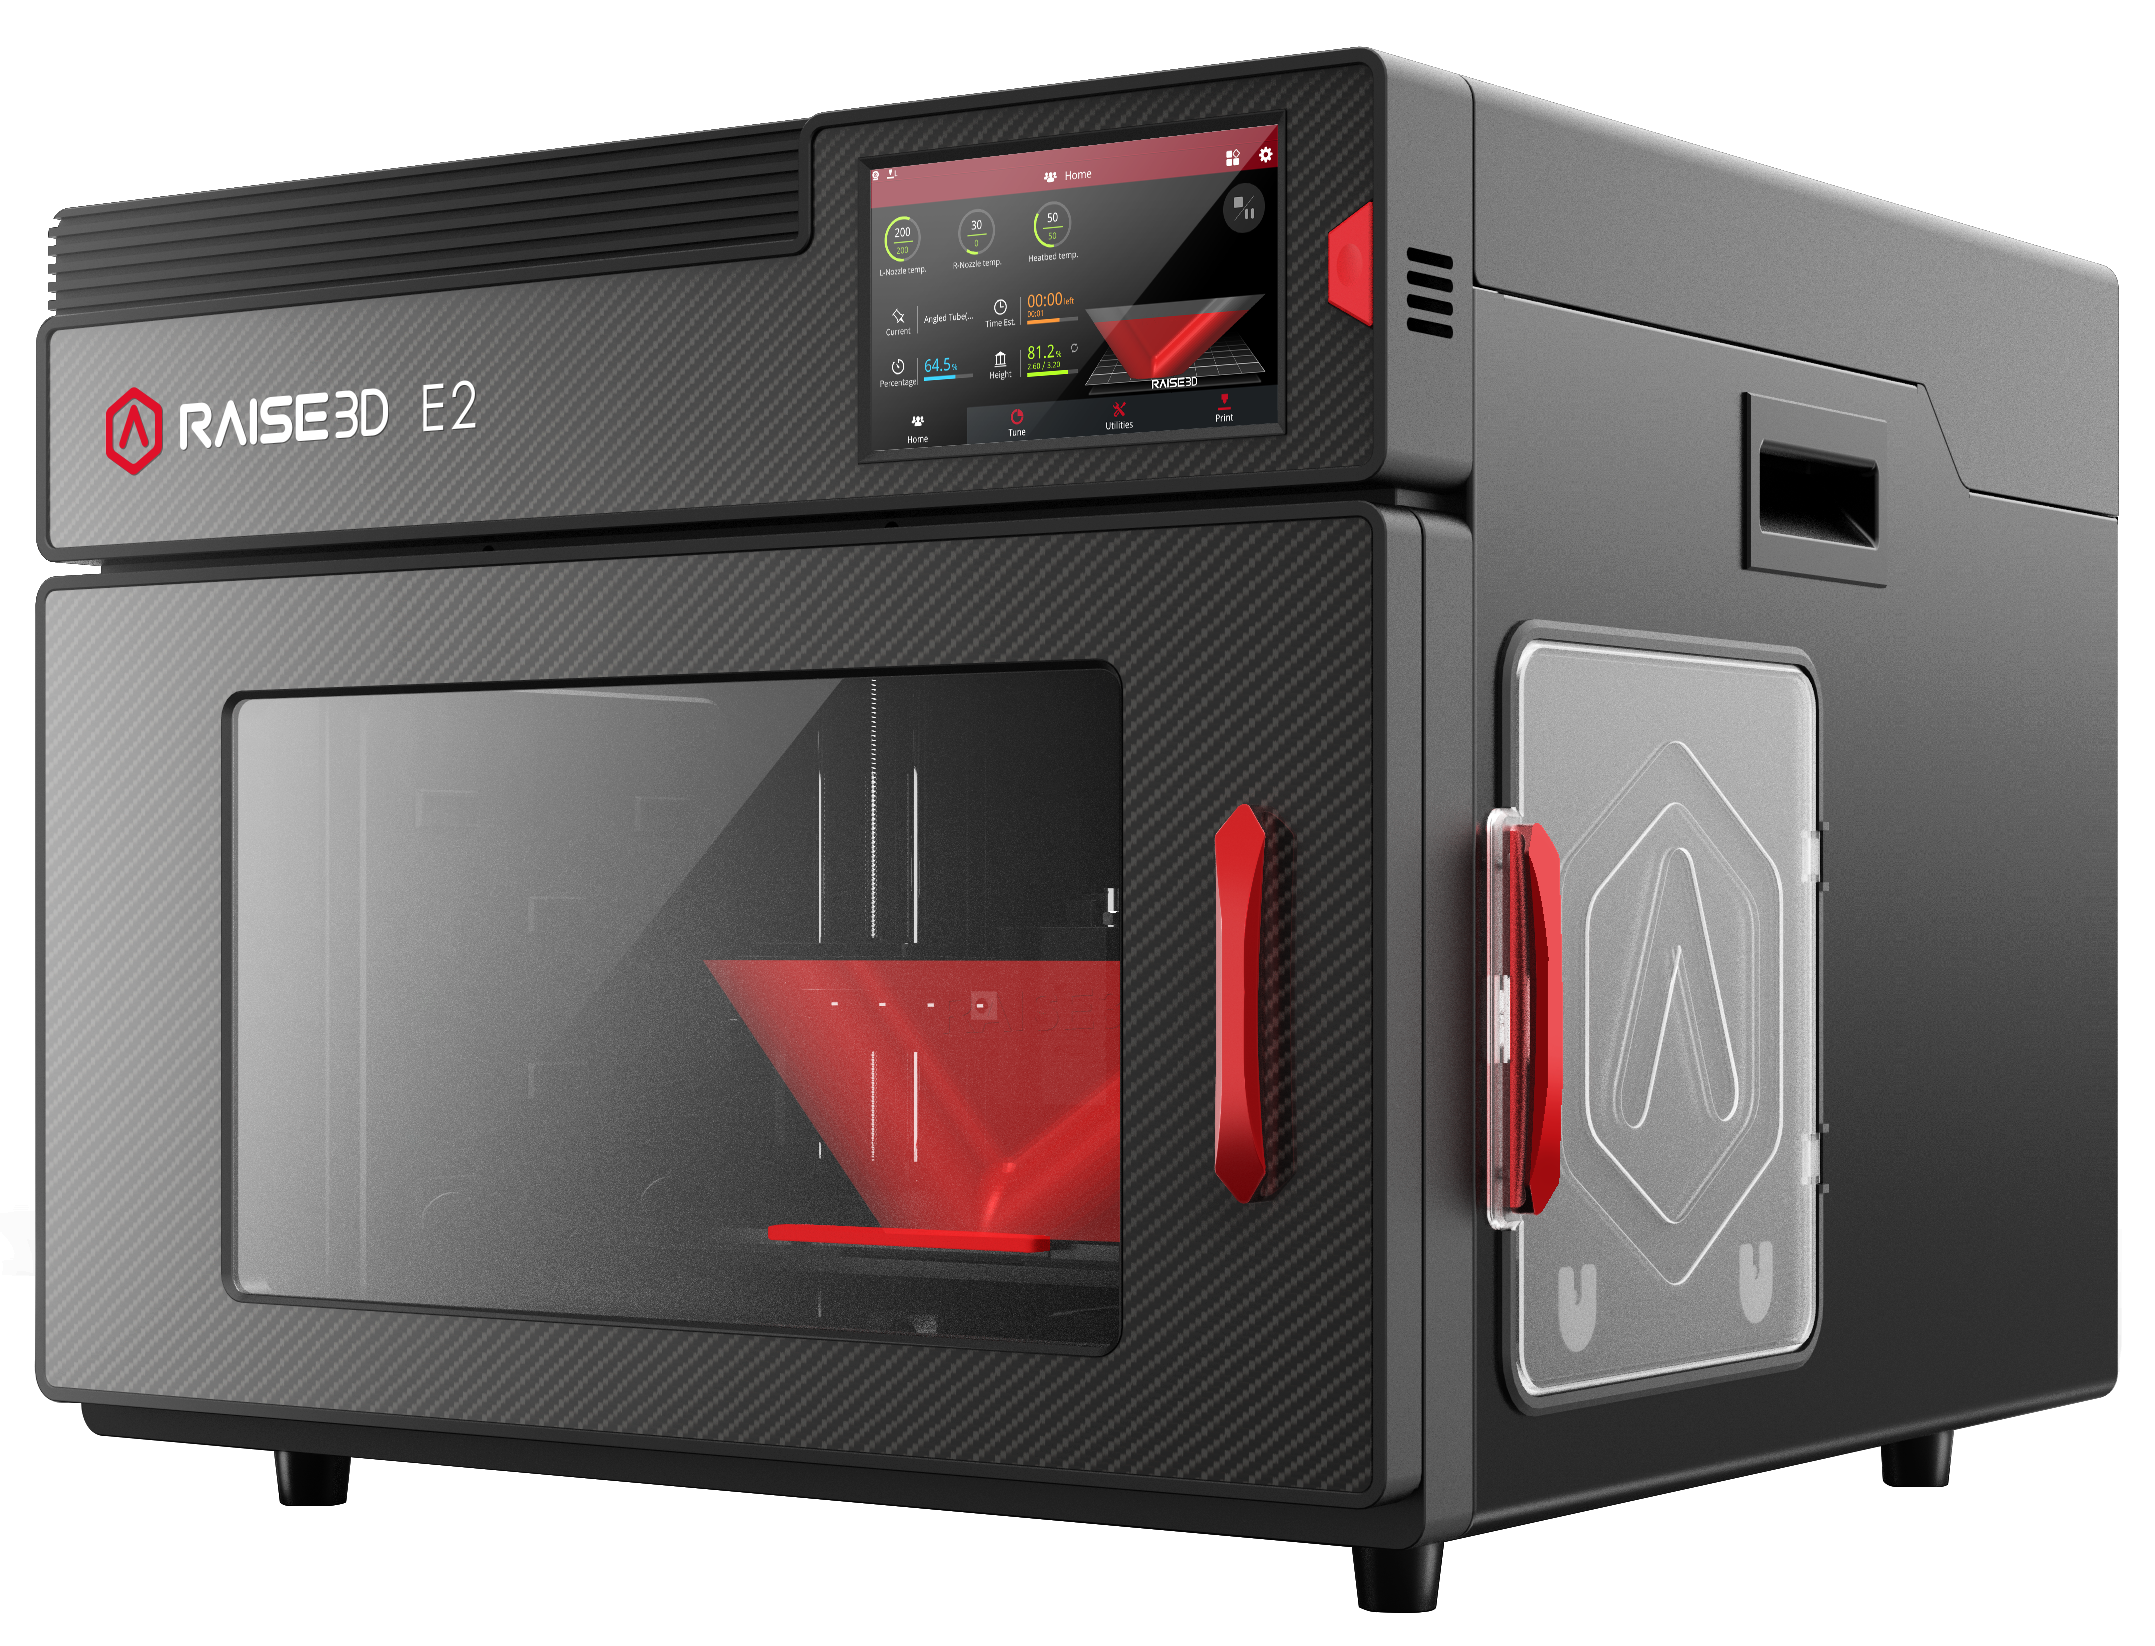 The E2 3D printer. Photo via Raise3D.